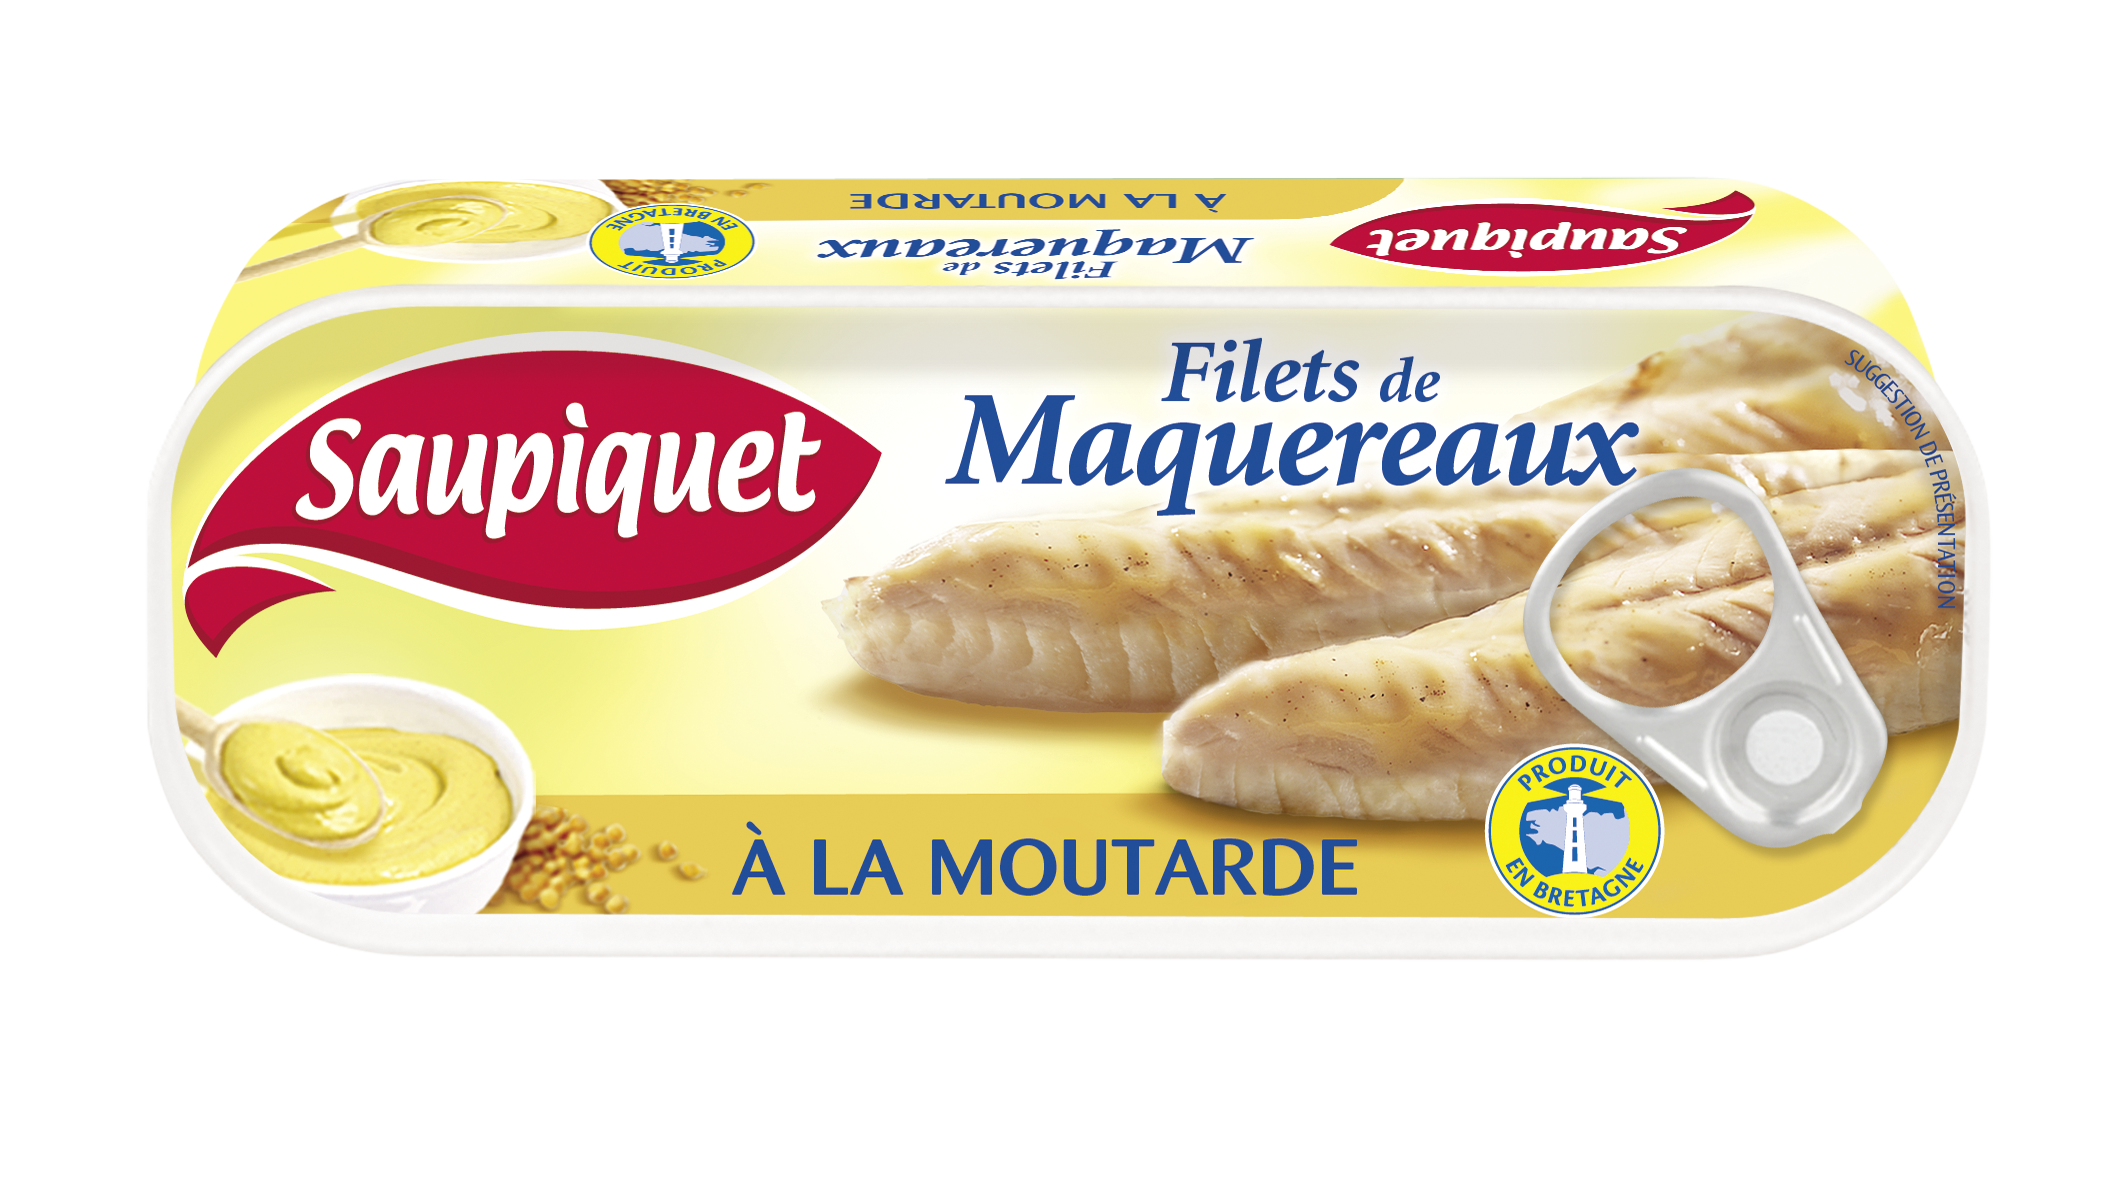 Filets de maquereaux à la moutarde en lot, Saupiquet (2 x 169 g)